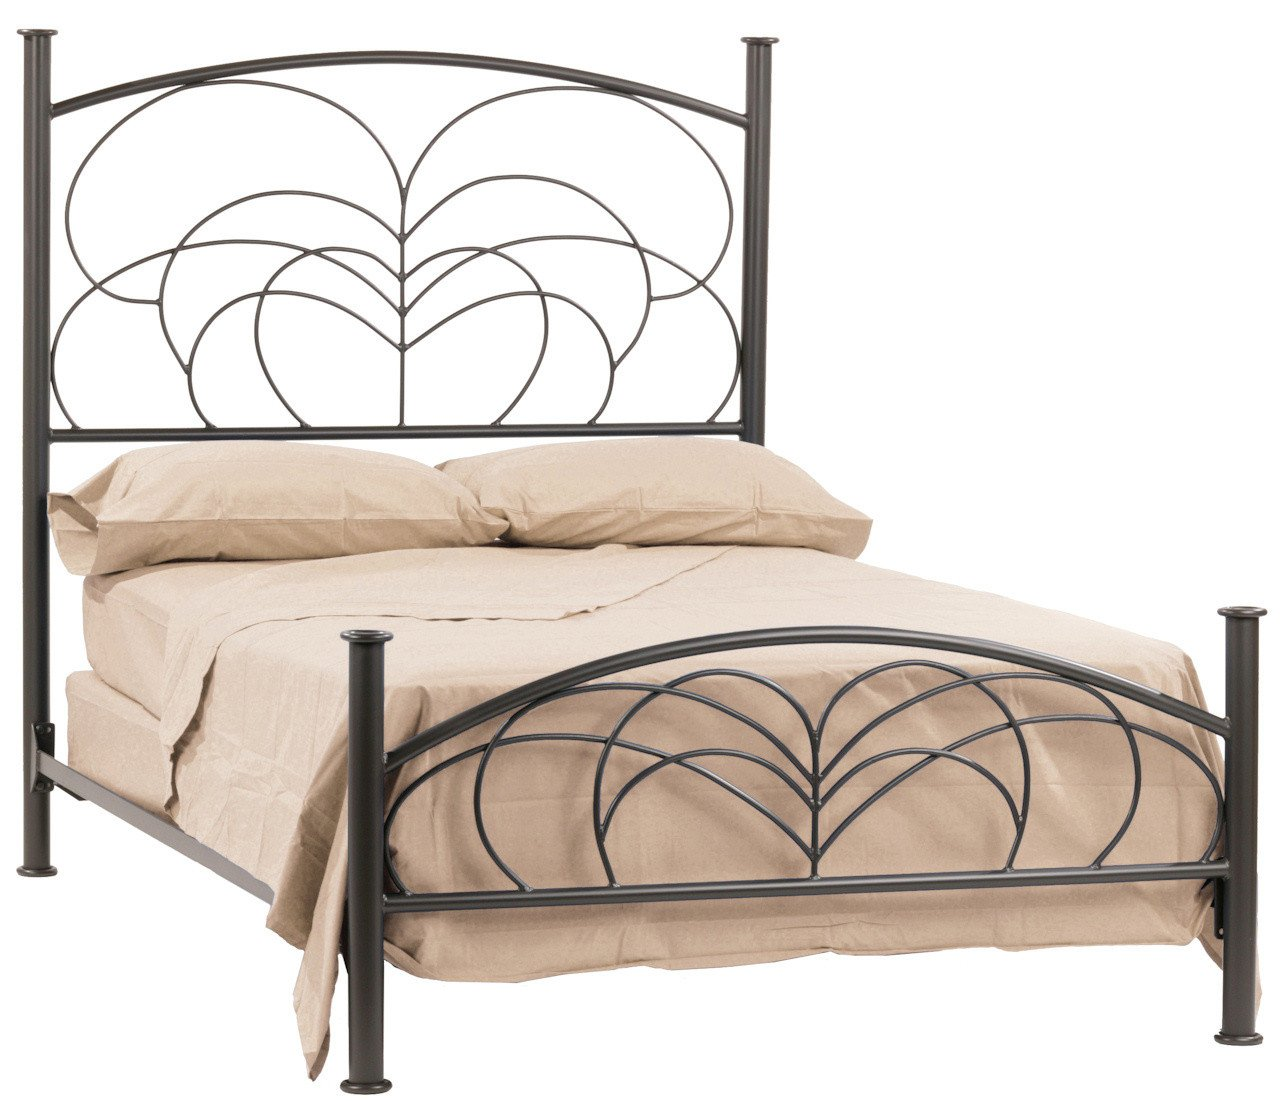 Queen Bed 12324 Product Photo